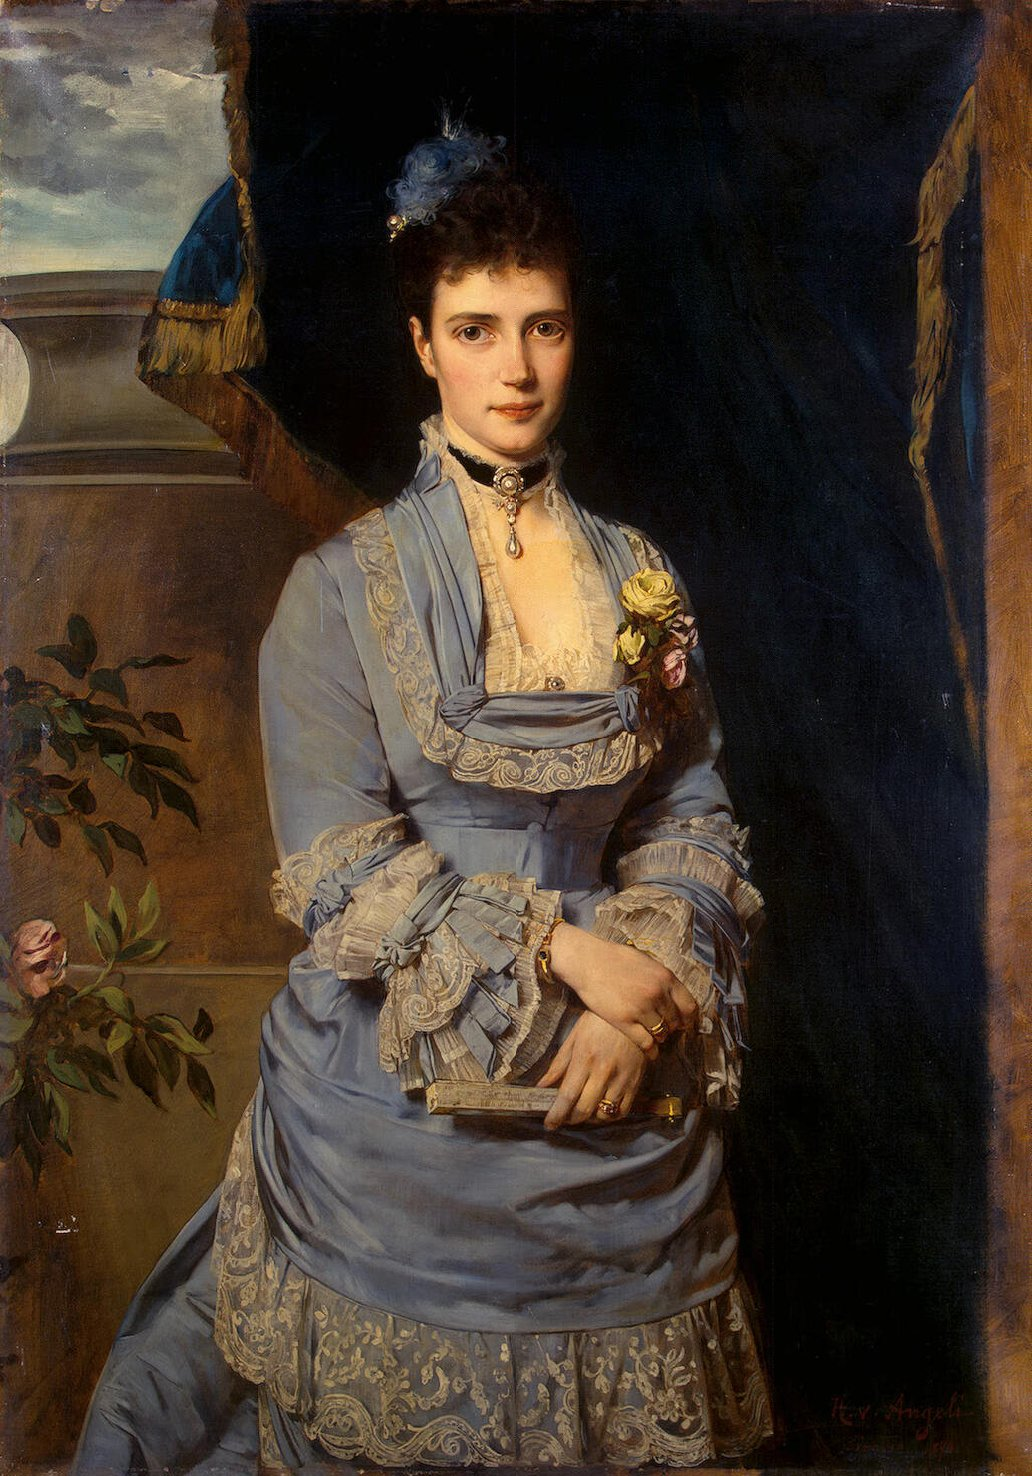 Portrait of Grand Duchess Maria Feodorovna (1847-1928) by Heinrich von Angeli (1840-1925), circa 1874, Collection of the Hermitage